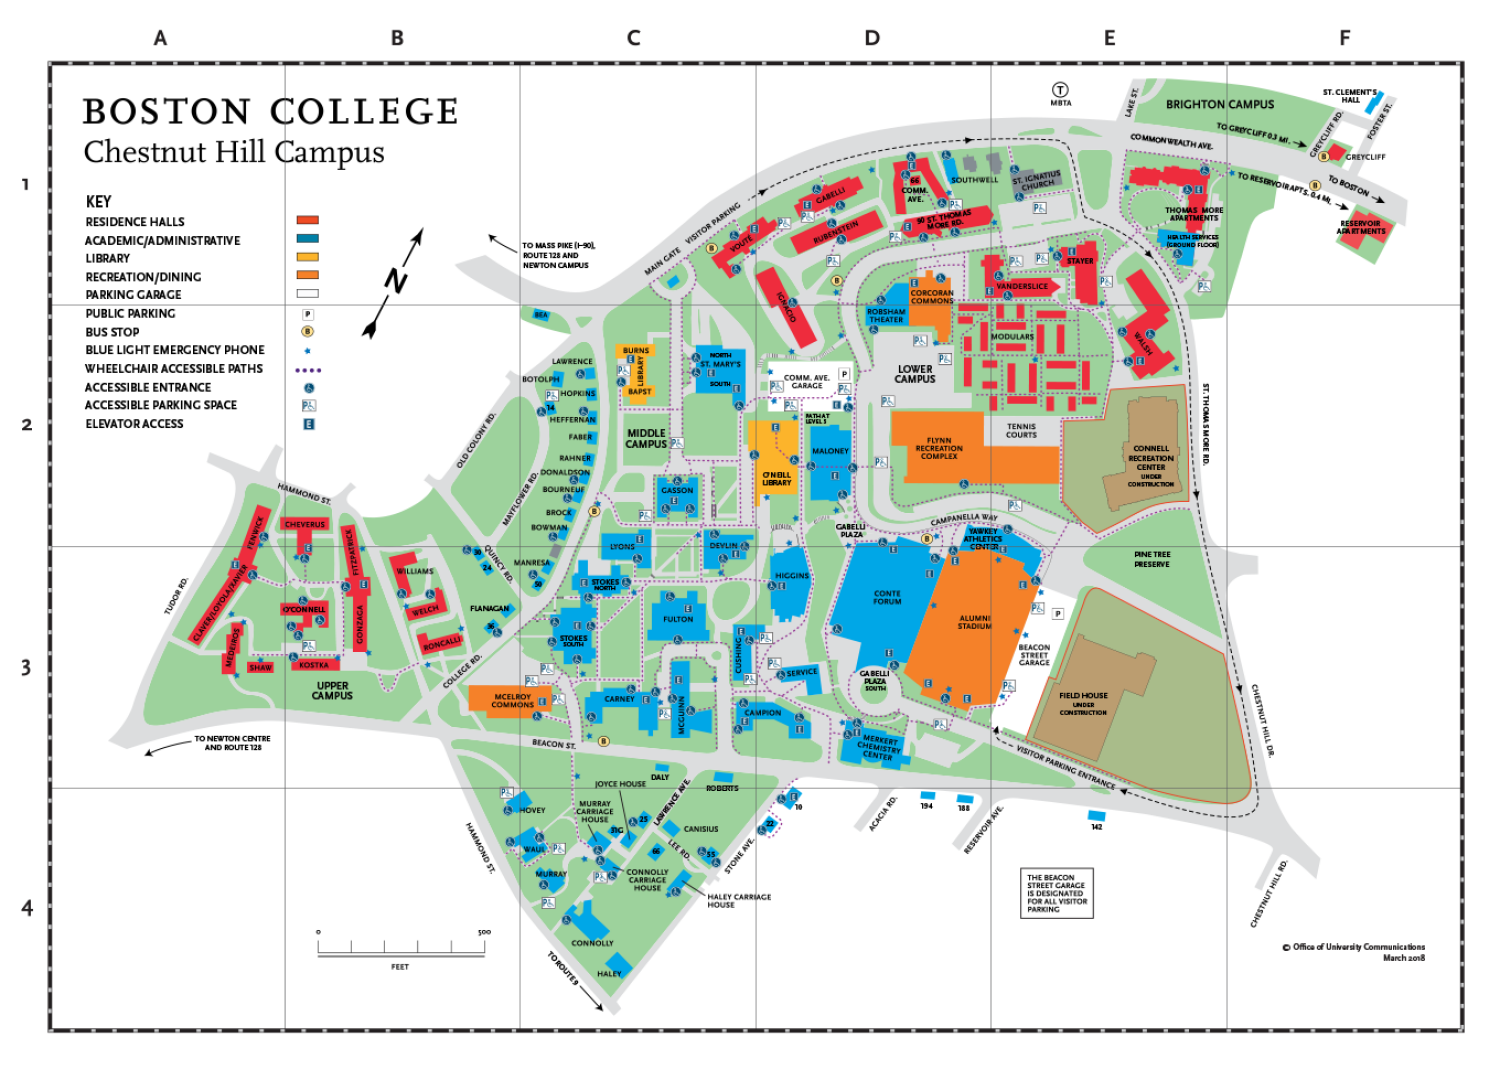 Boston College Chestnut Hill Campus Map